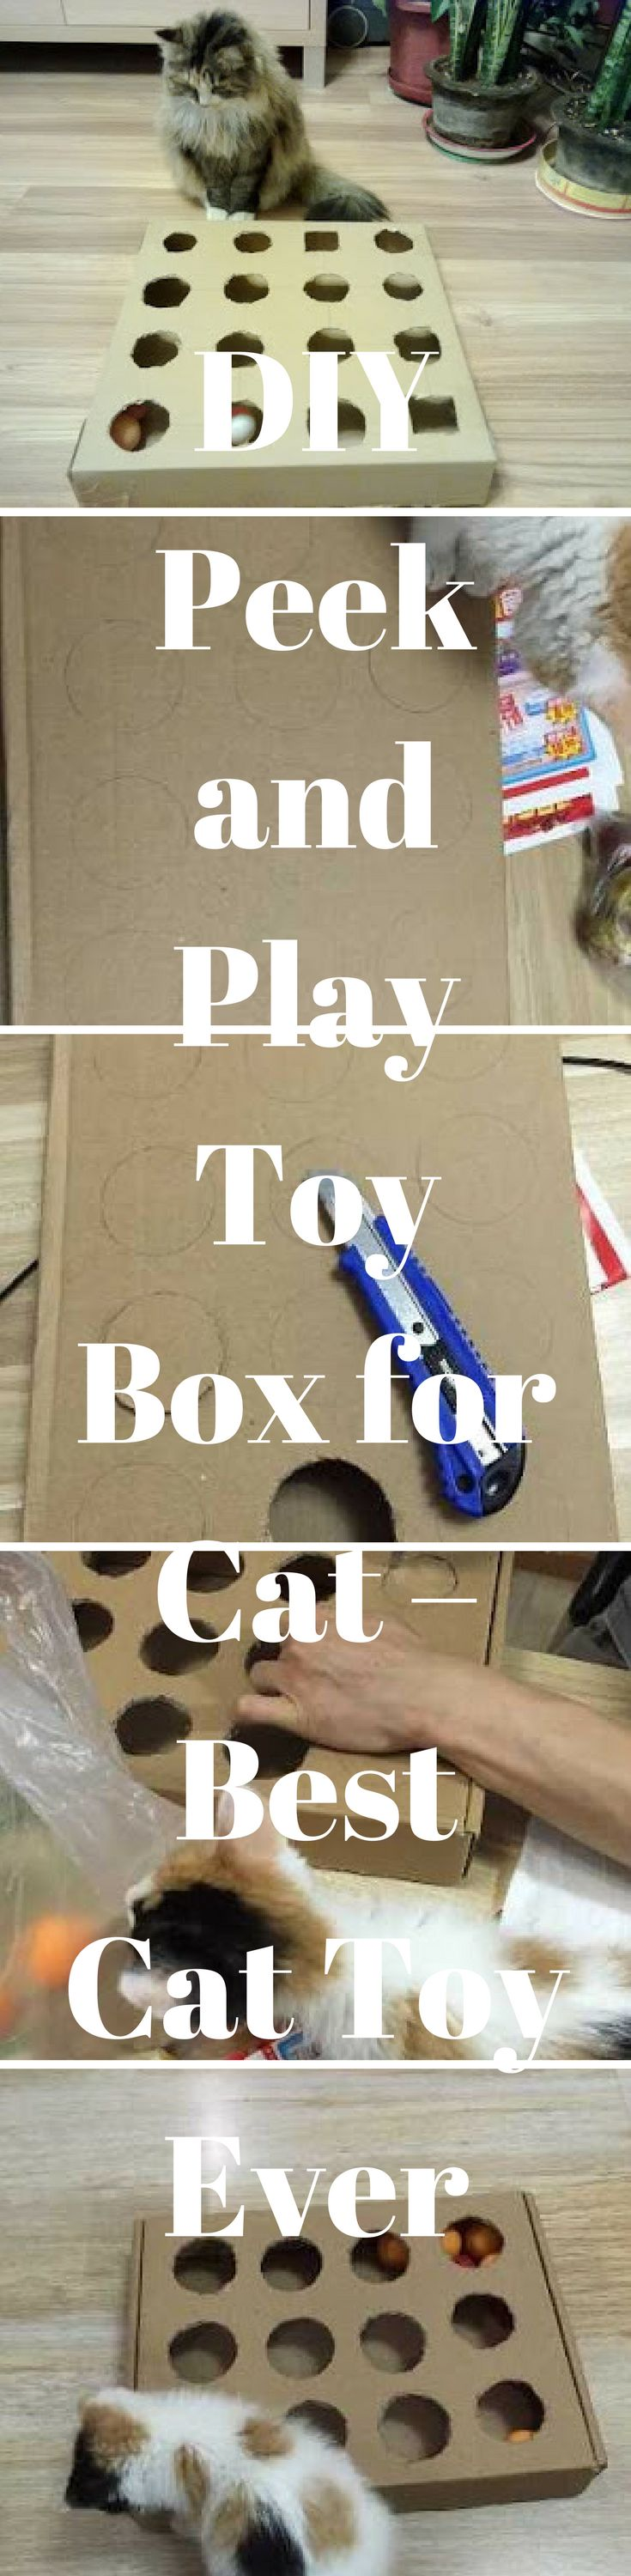 #diy #cat #cattoy #toys #peek&play  Cats have an instinctual desire to watch cracks and crevices, especially when they know that something is hiding just beyond their sight. The Peek-A-Play Toy Box is designed to build on your cat's instinct by partially hiding some of your cat's favorite toys, and your cat will go crazy fishing them out. And it is so easy to DIY! It is especially great for those times when you have to leave your cat home alone, because this toy will keep your cat